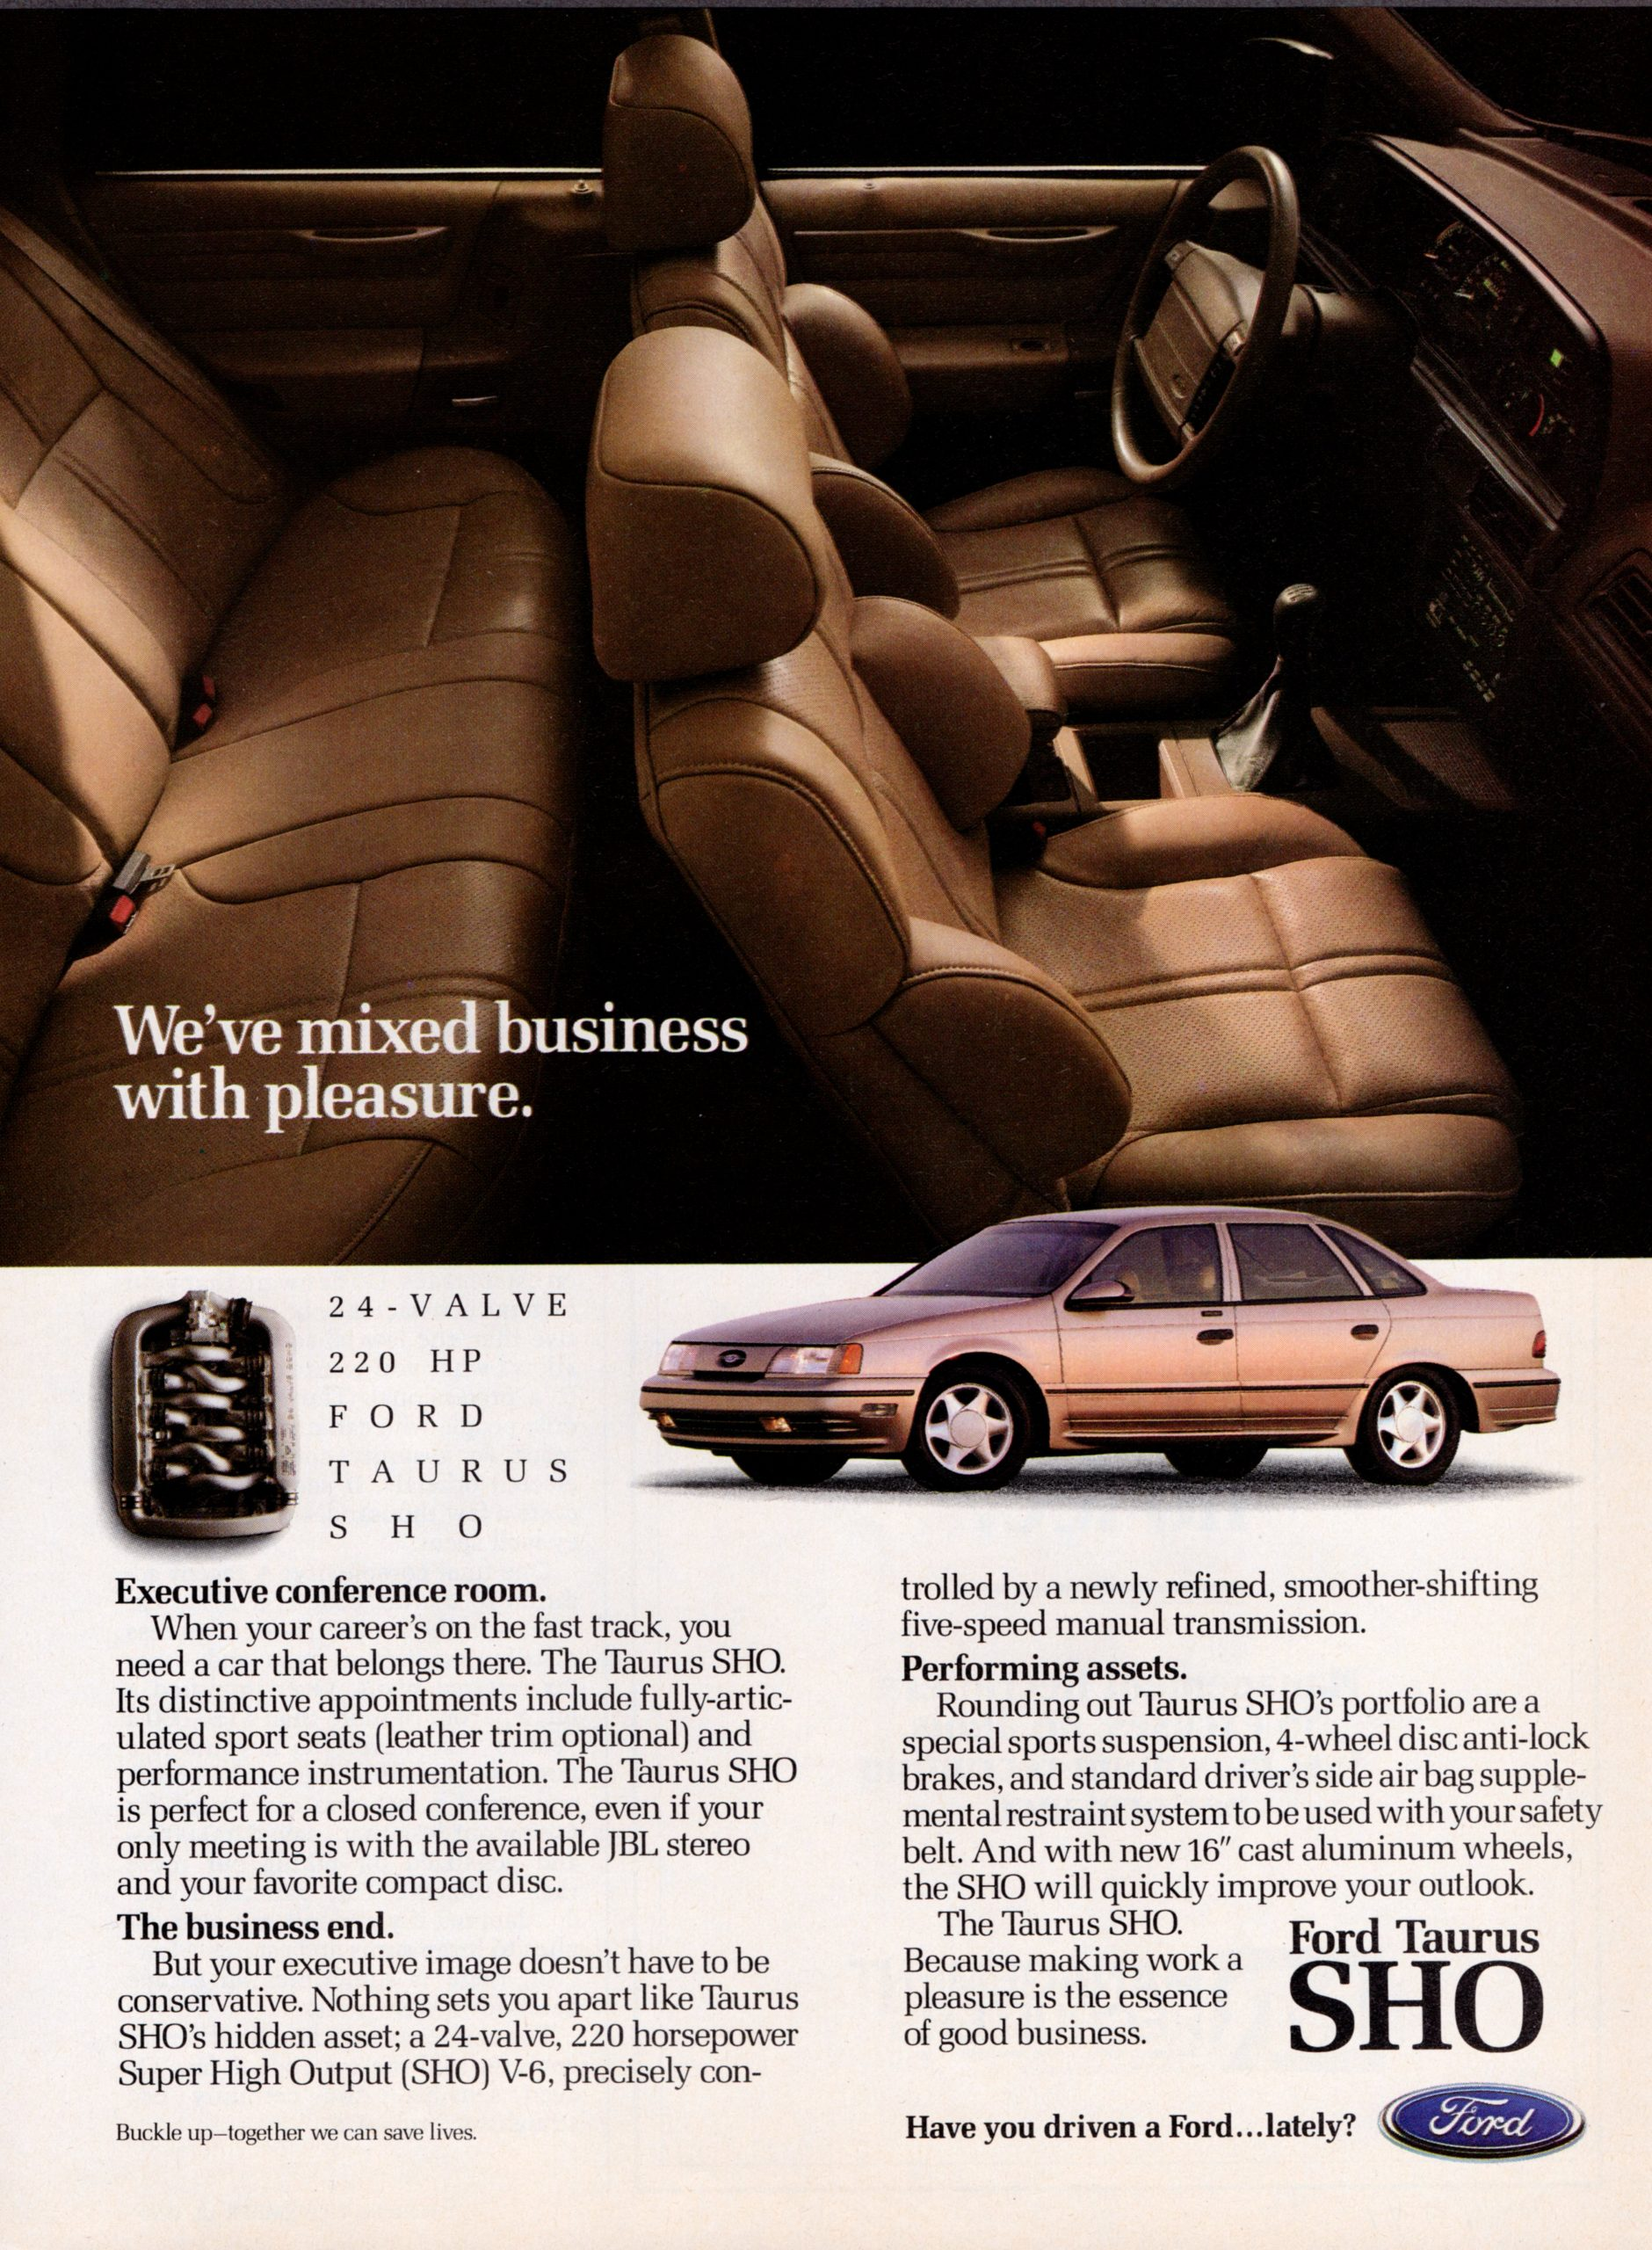 1991 Ford Taurus SHO Advert